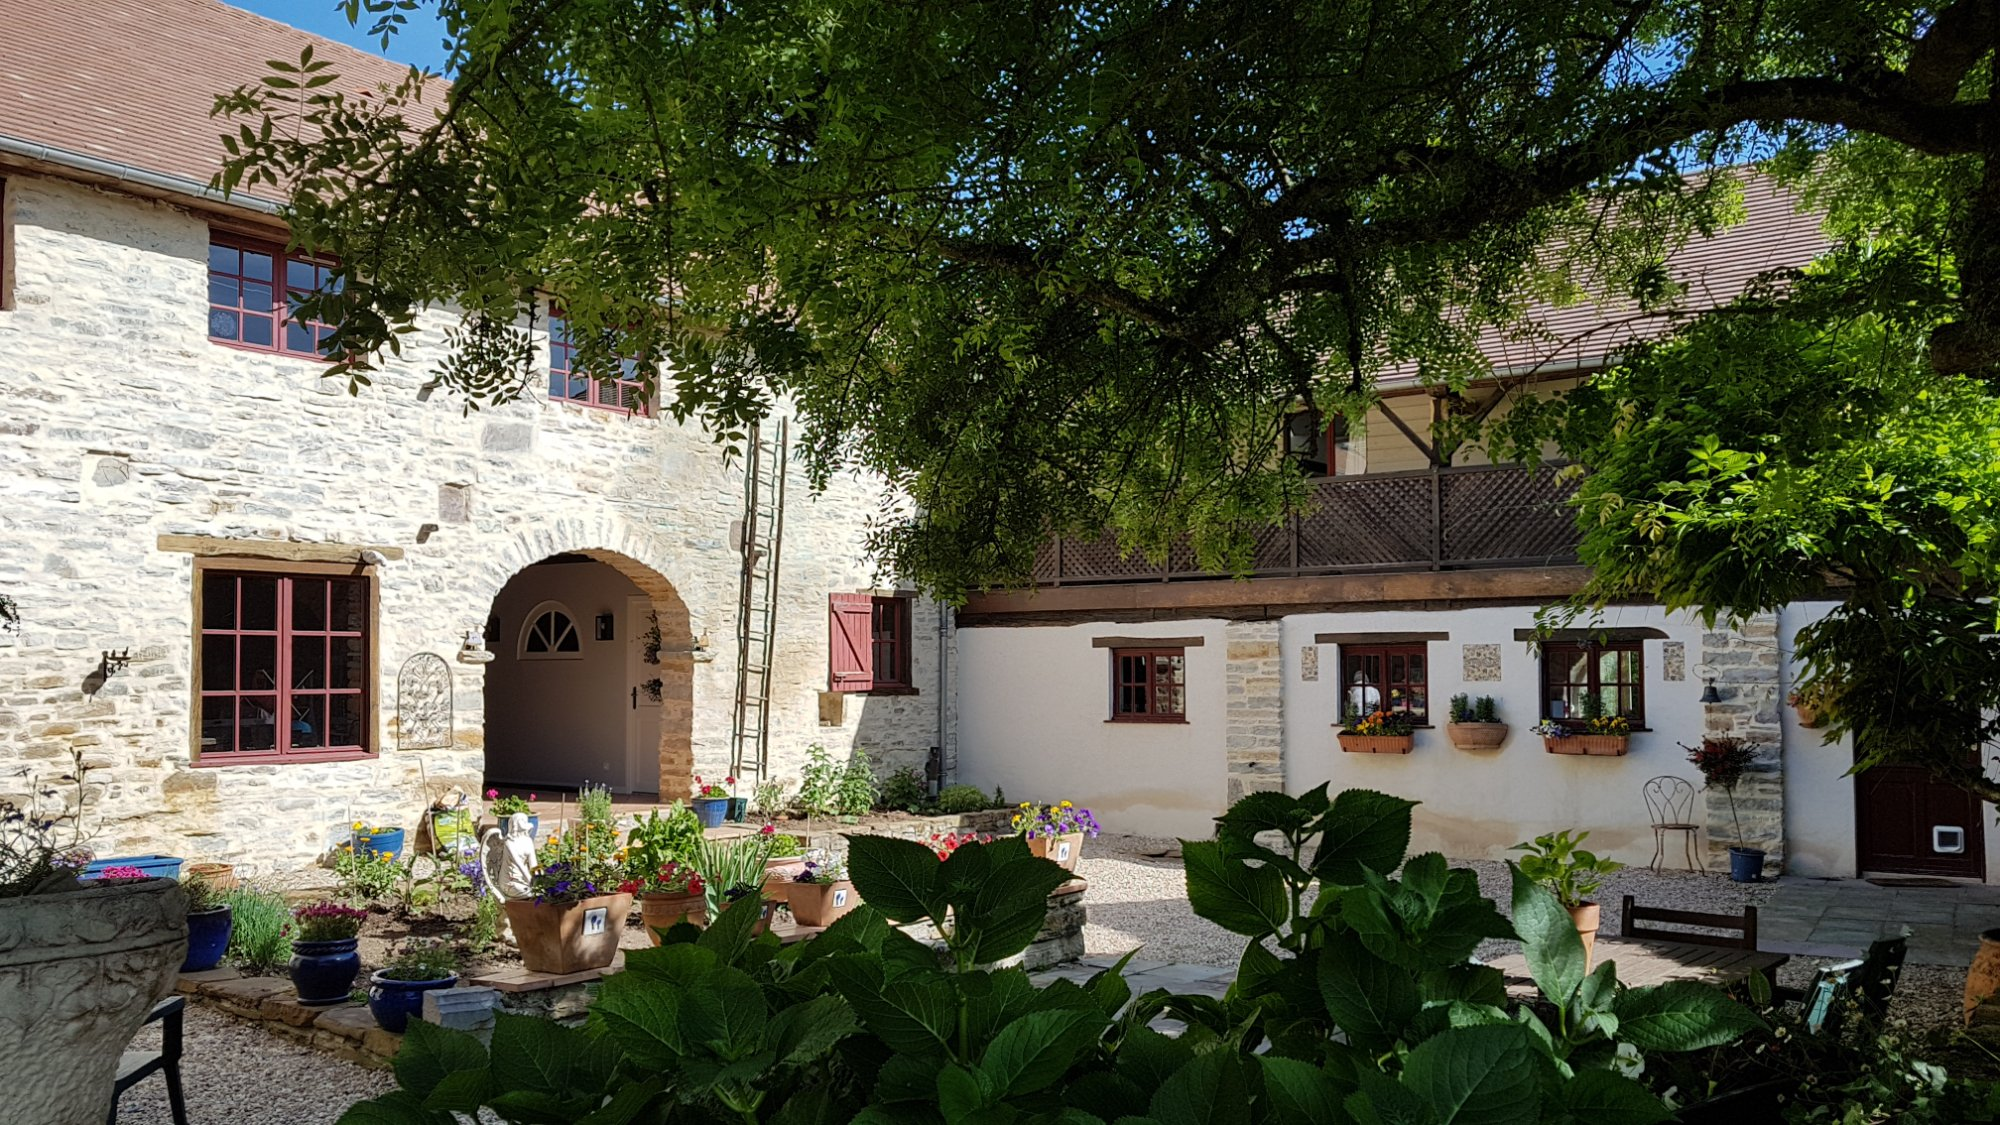 Chambres d Hotes Secret Pyrenees UPDATED 2017 Prices & Ranch